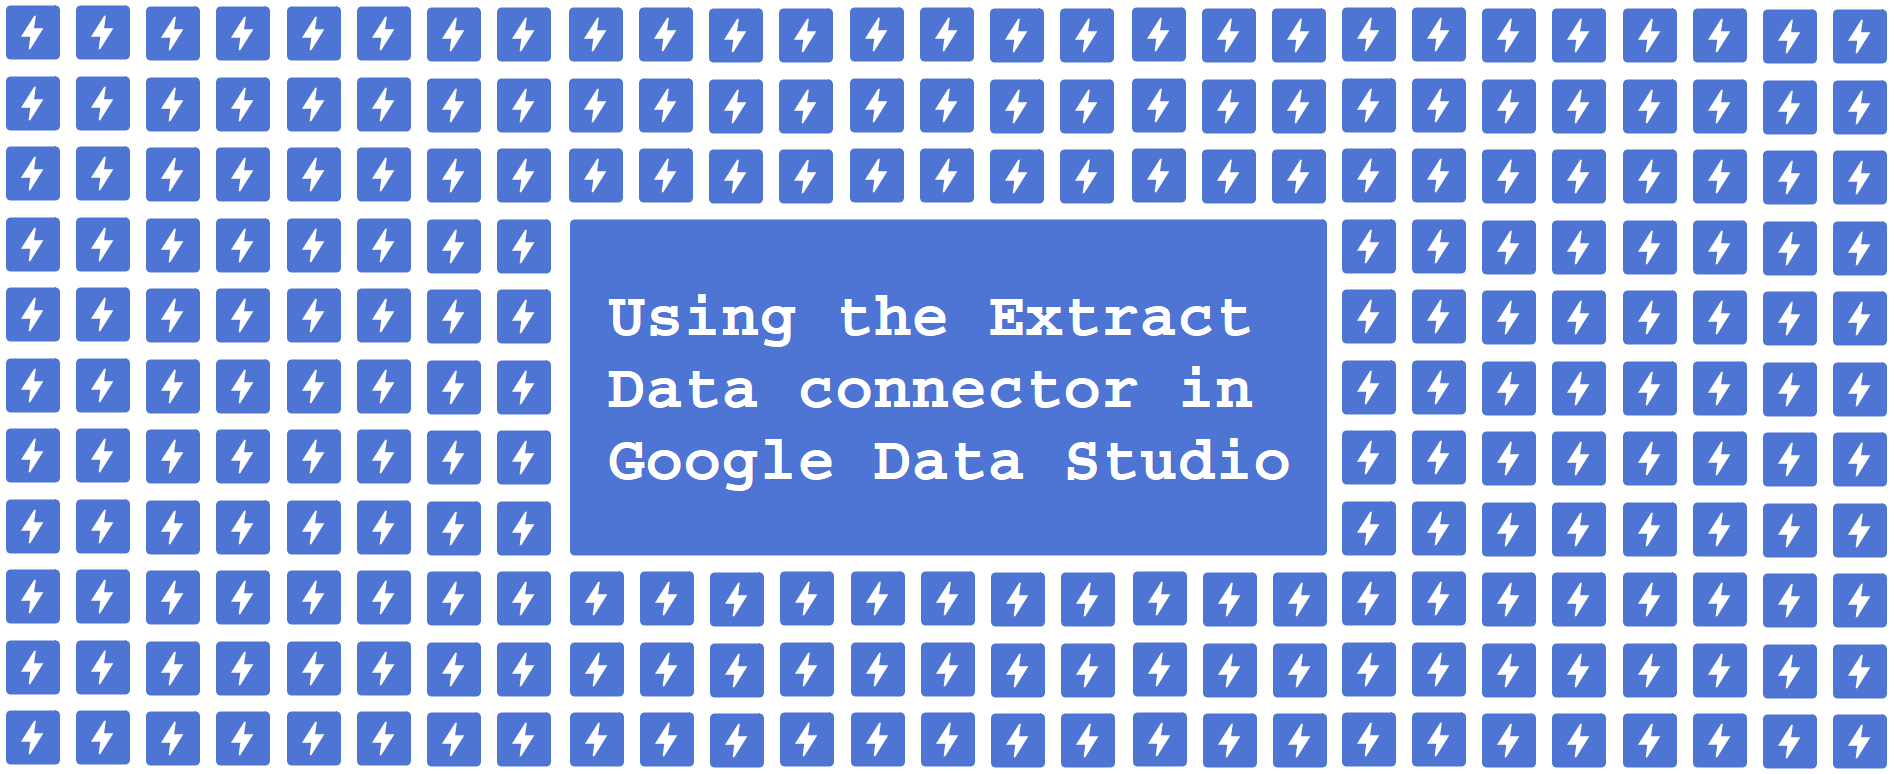 Using the Extract Data connector in Google Data Studio